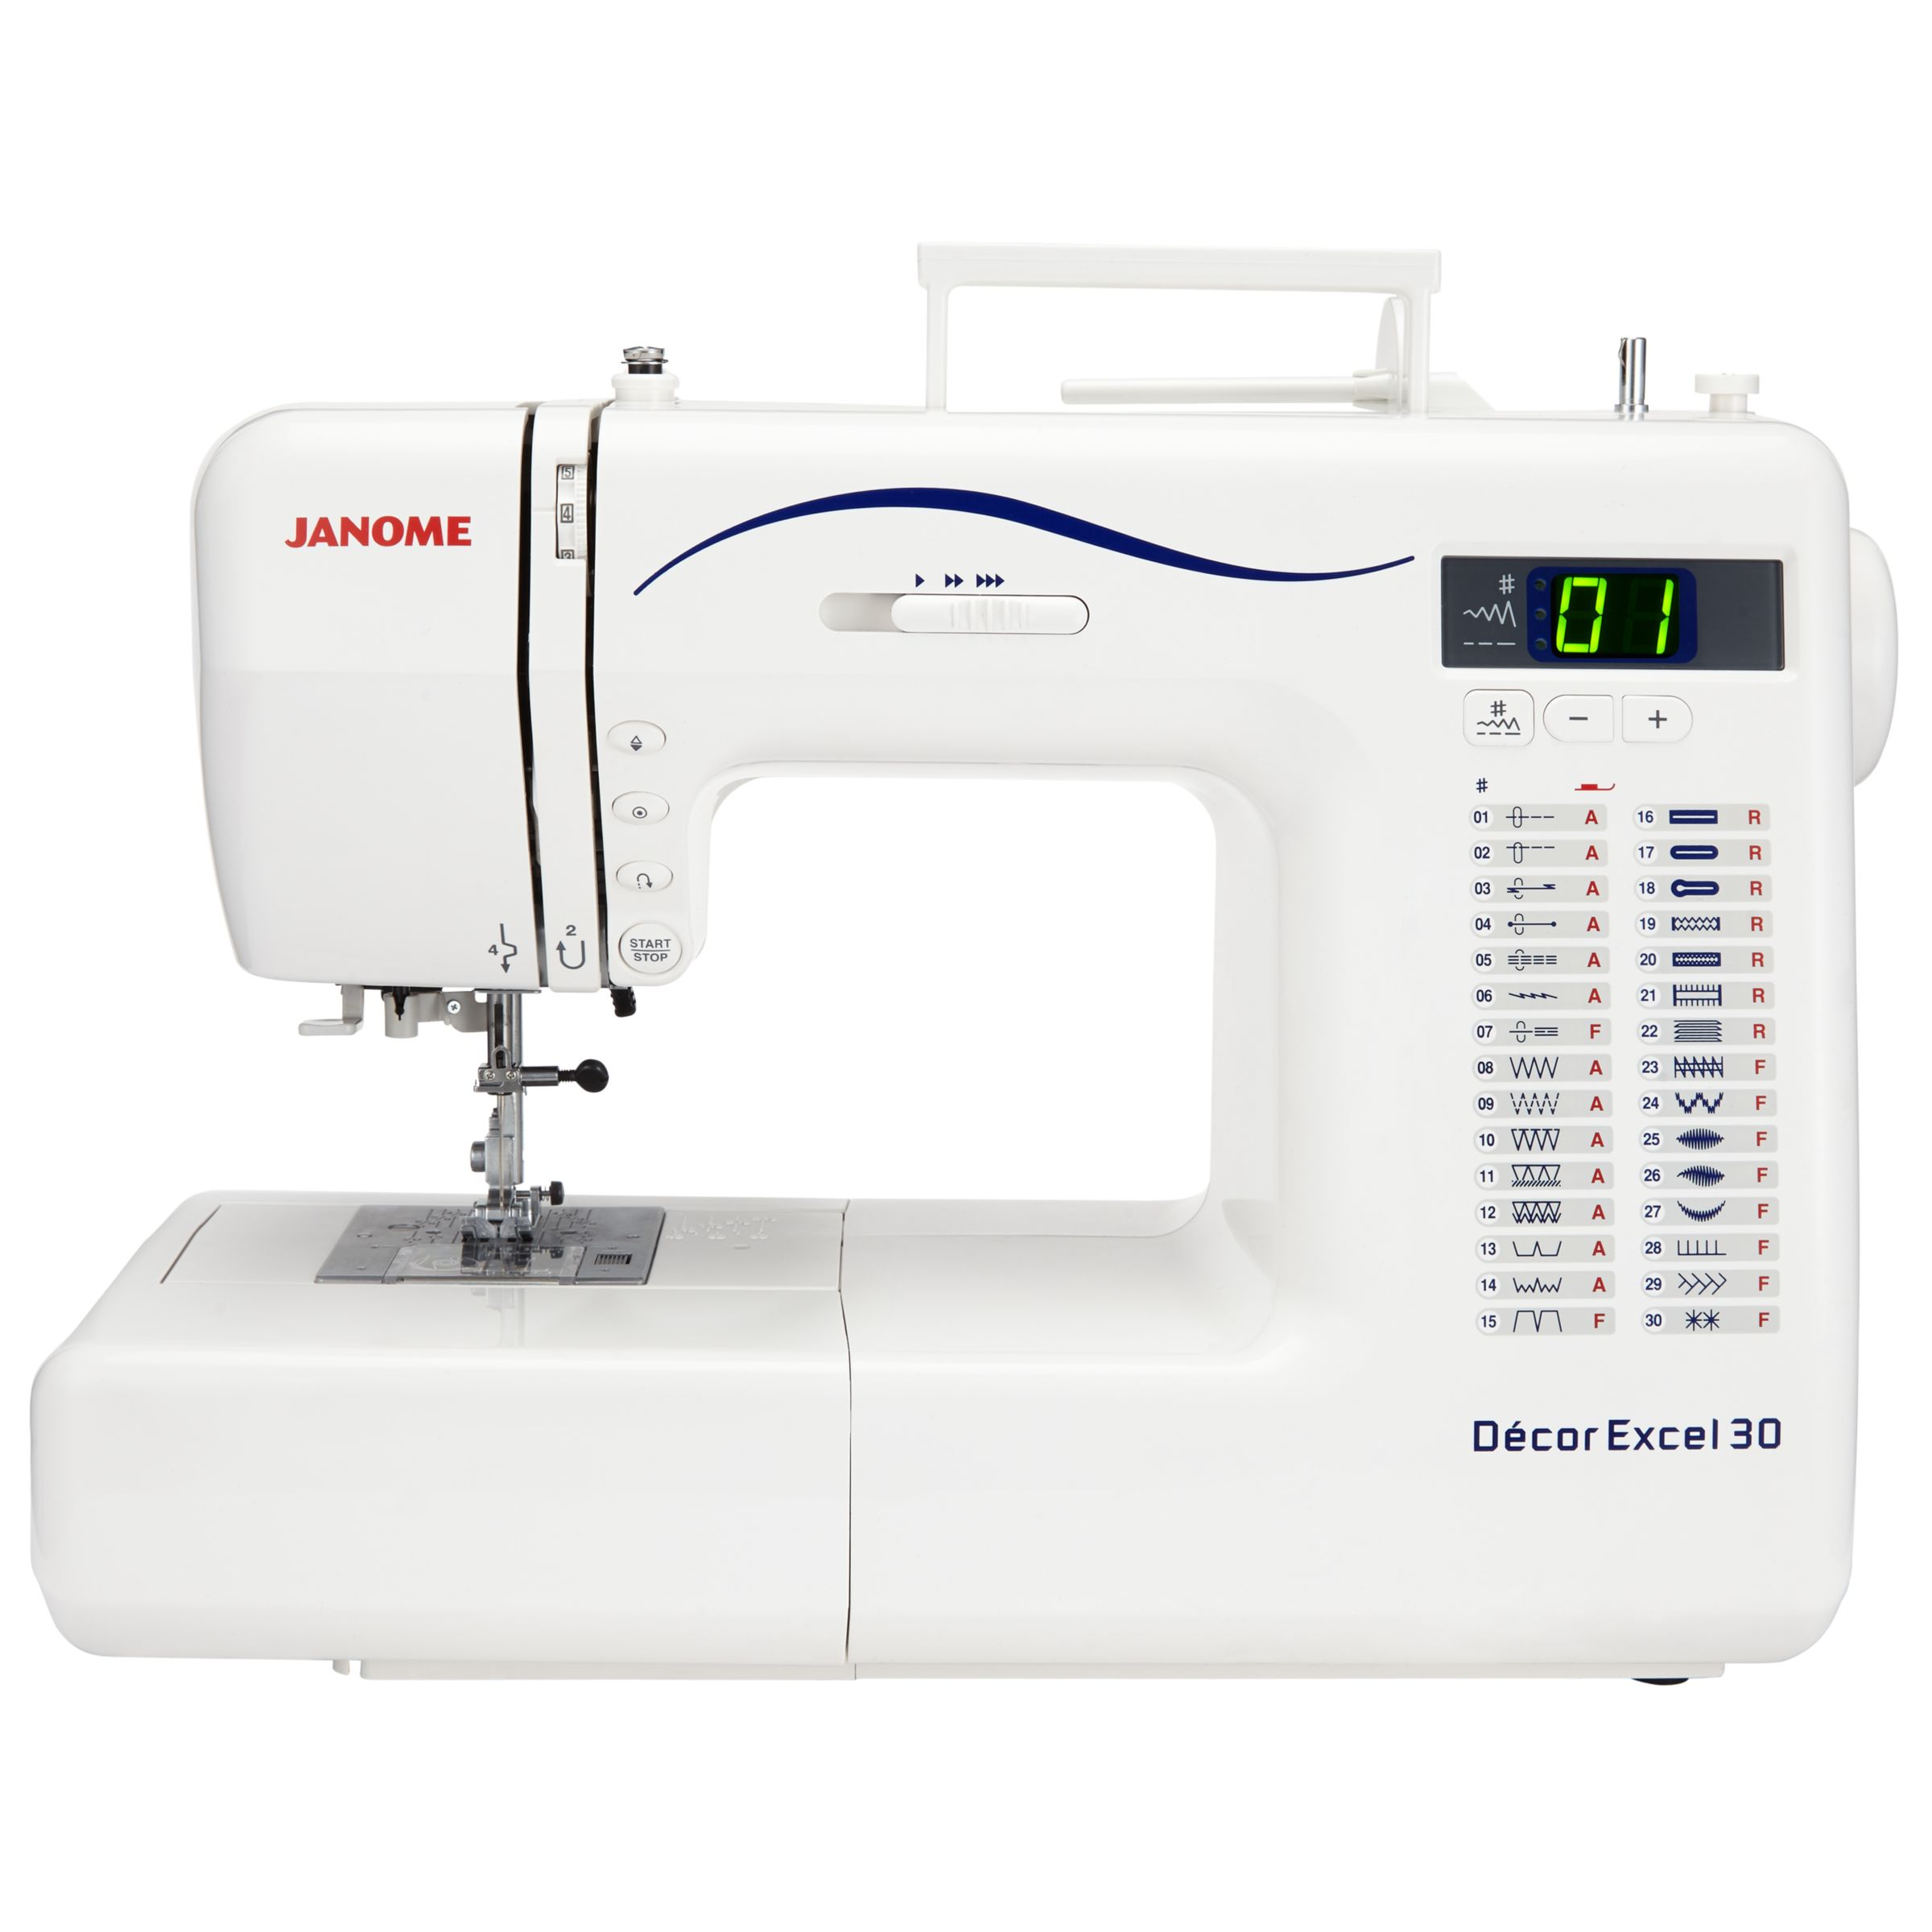 Janome dmx300 deluxe sewing machine home diy for Best home decor sewing machine